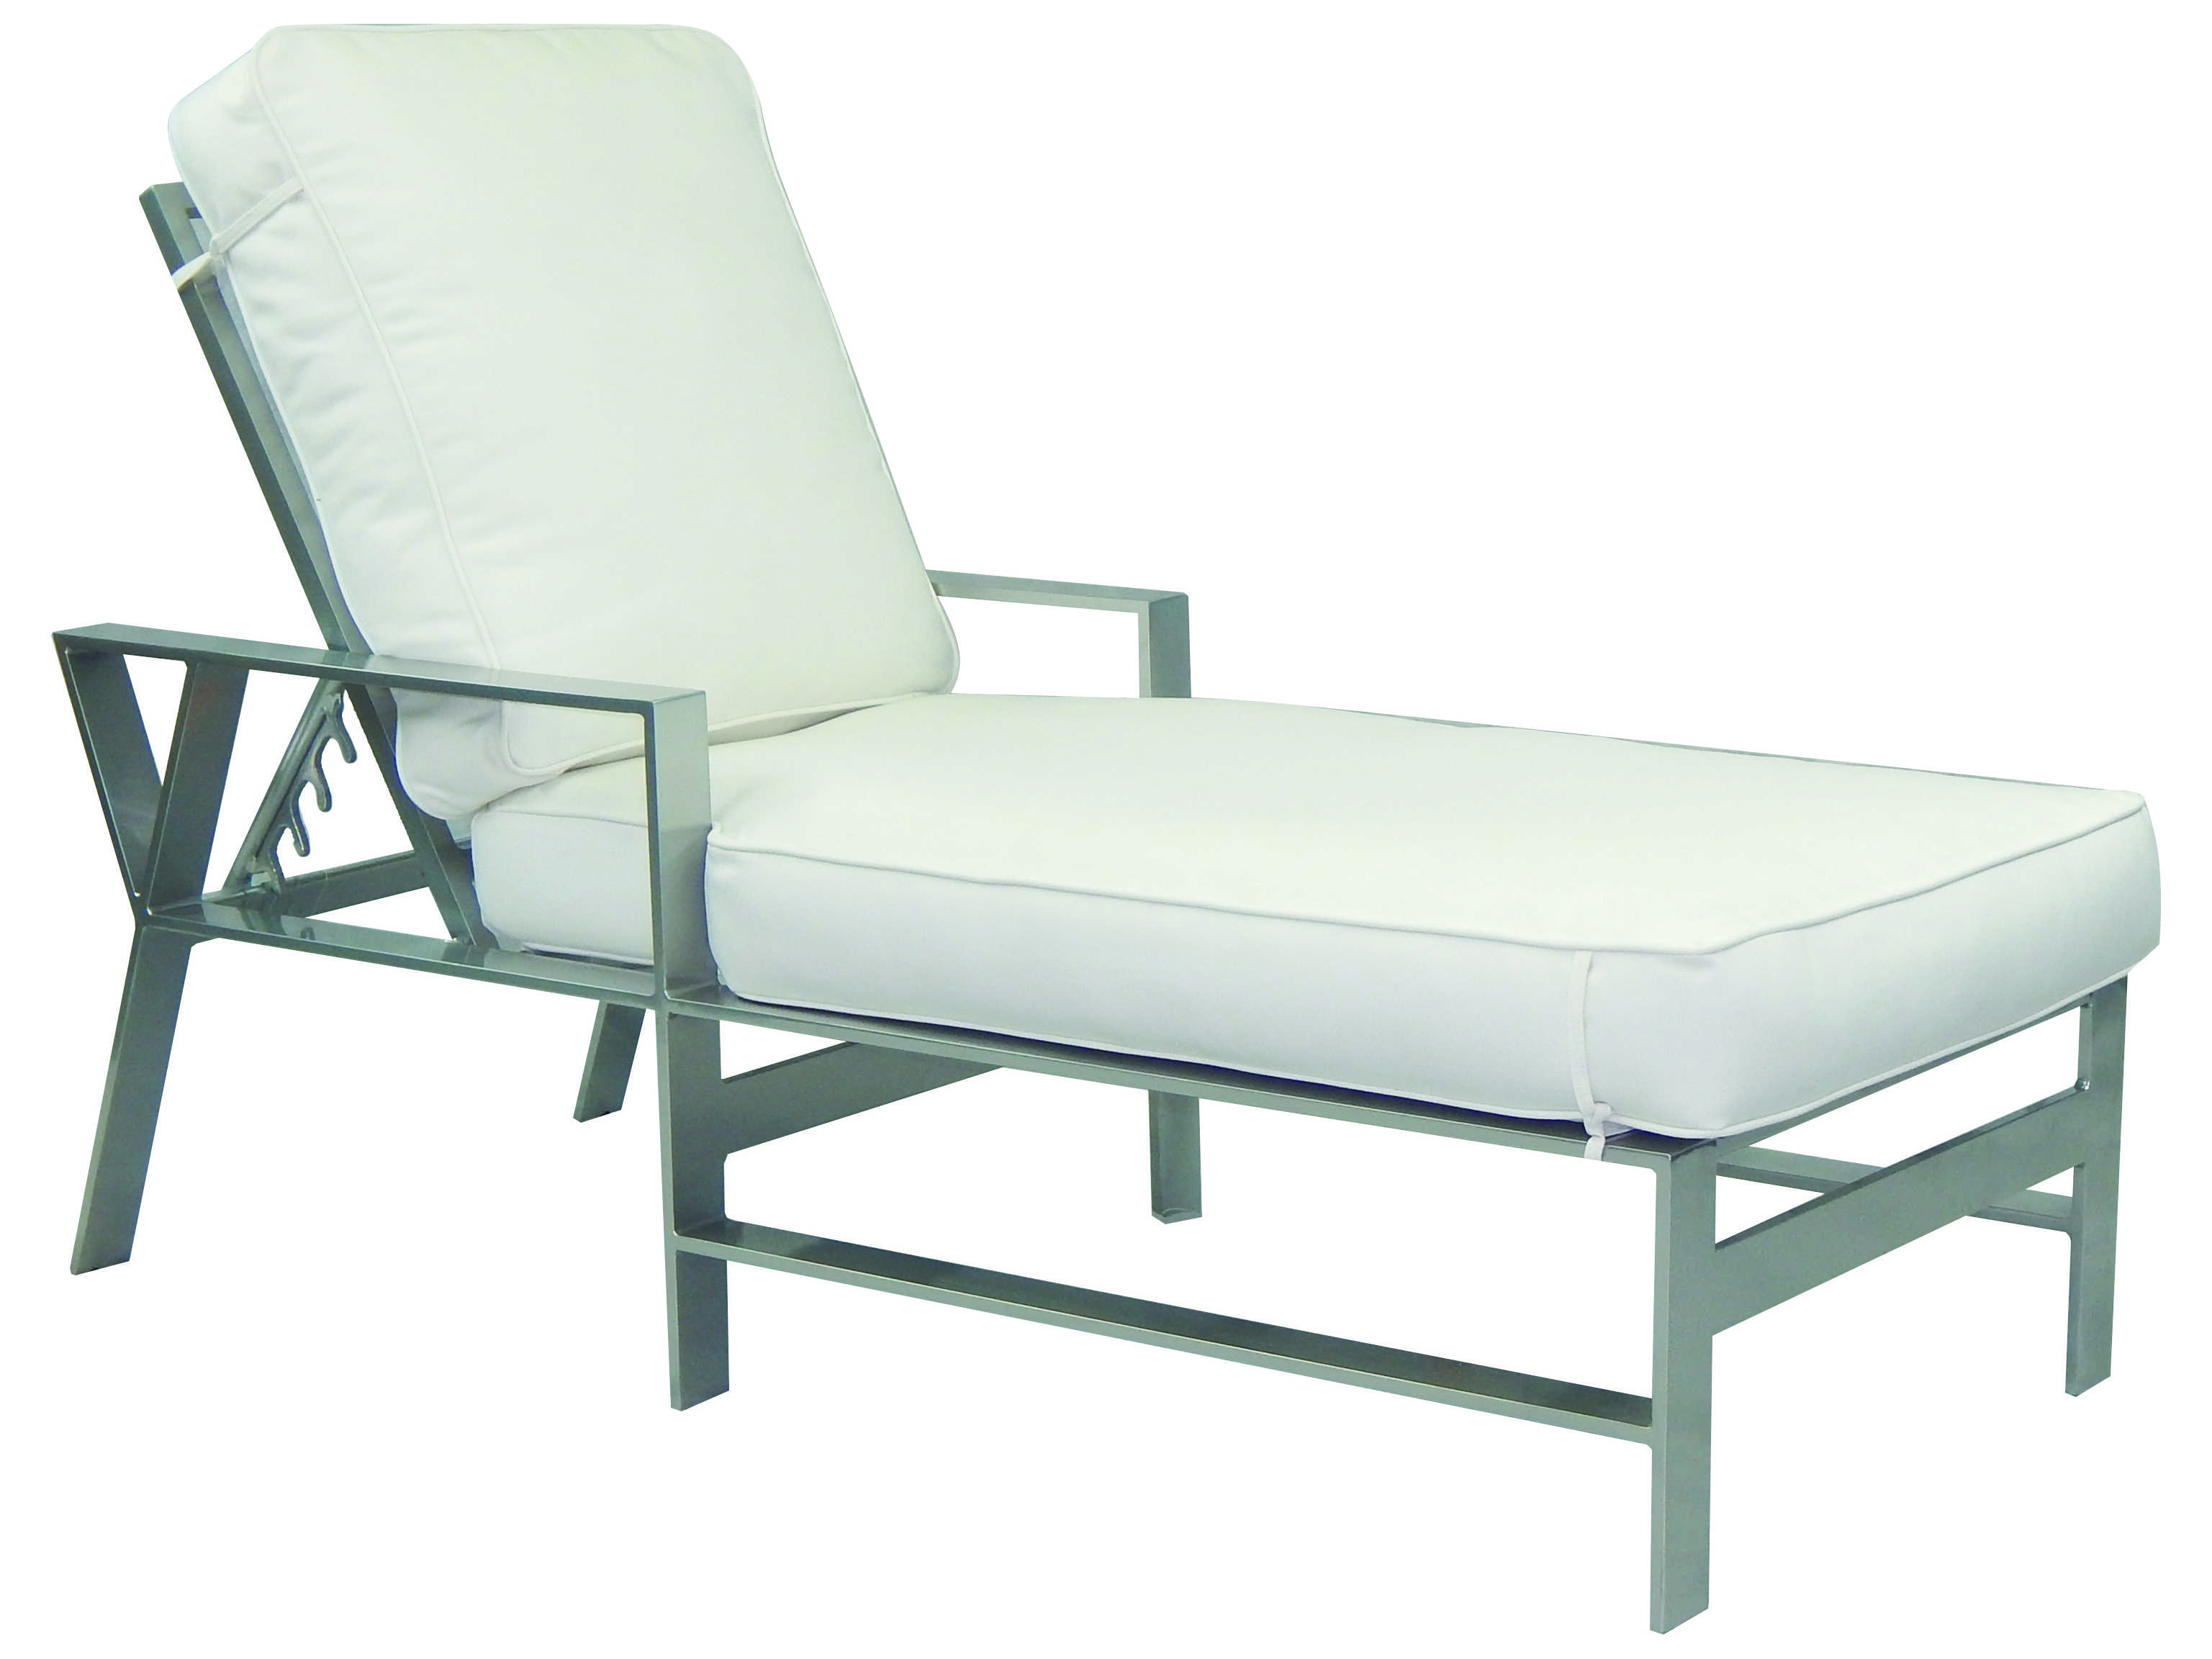 Castelle trento cushion dining cast aluminum adjustable for Cast aluminum chaise lounge